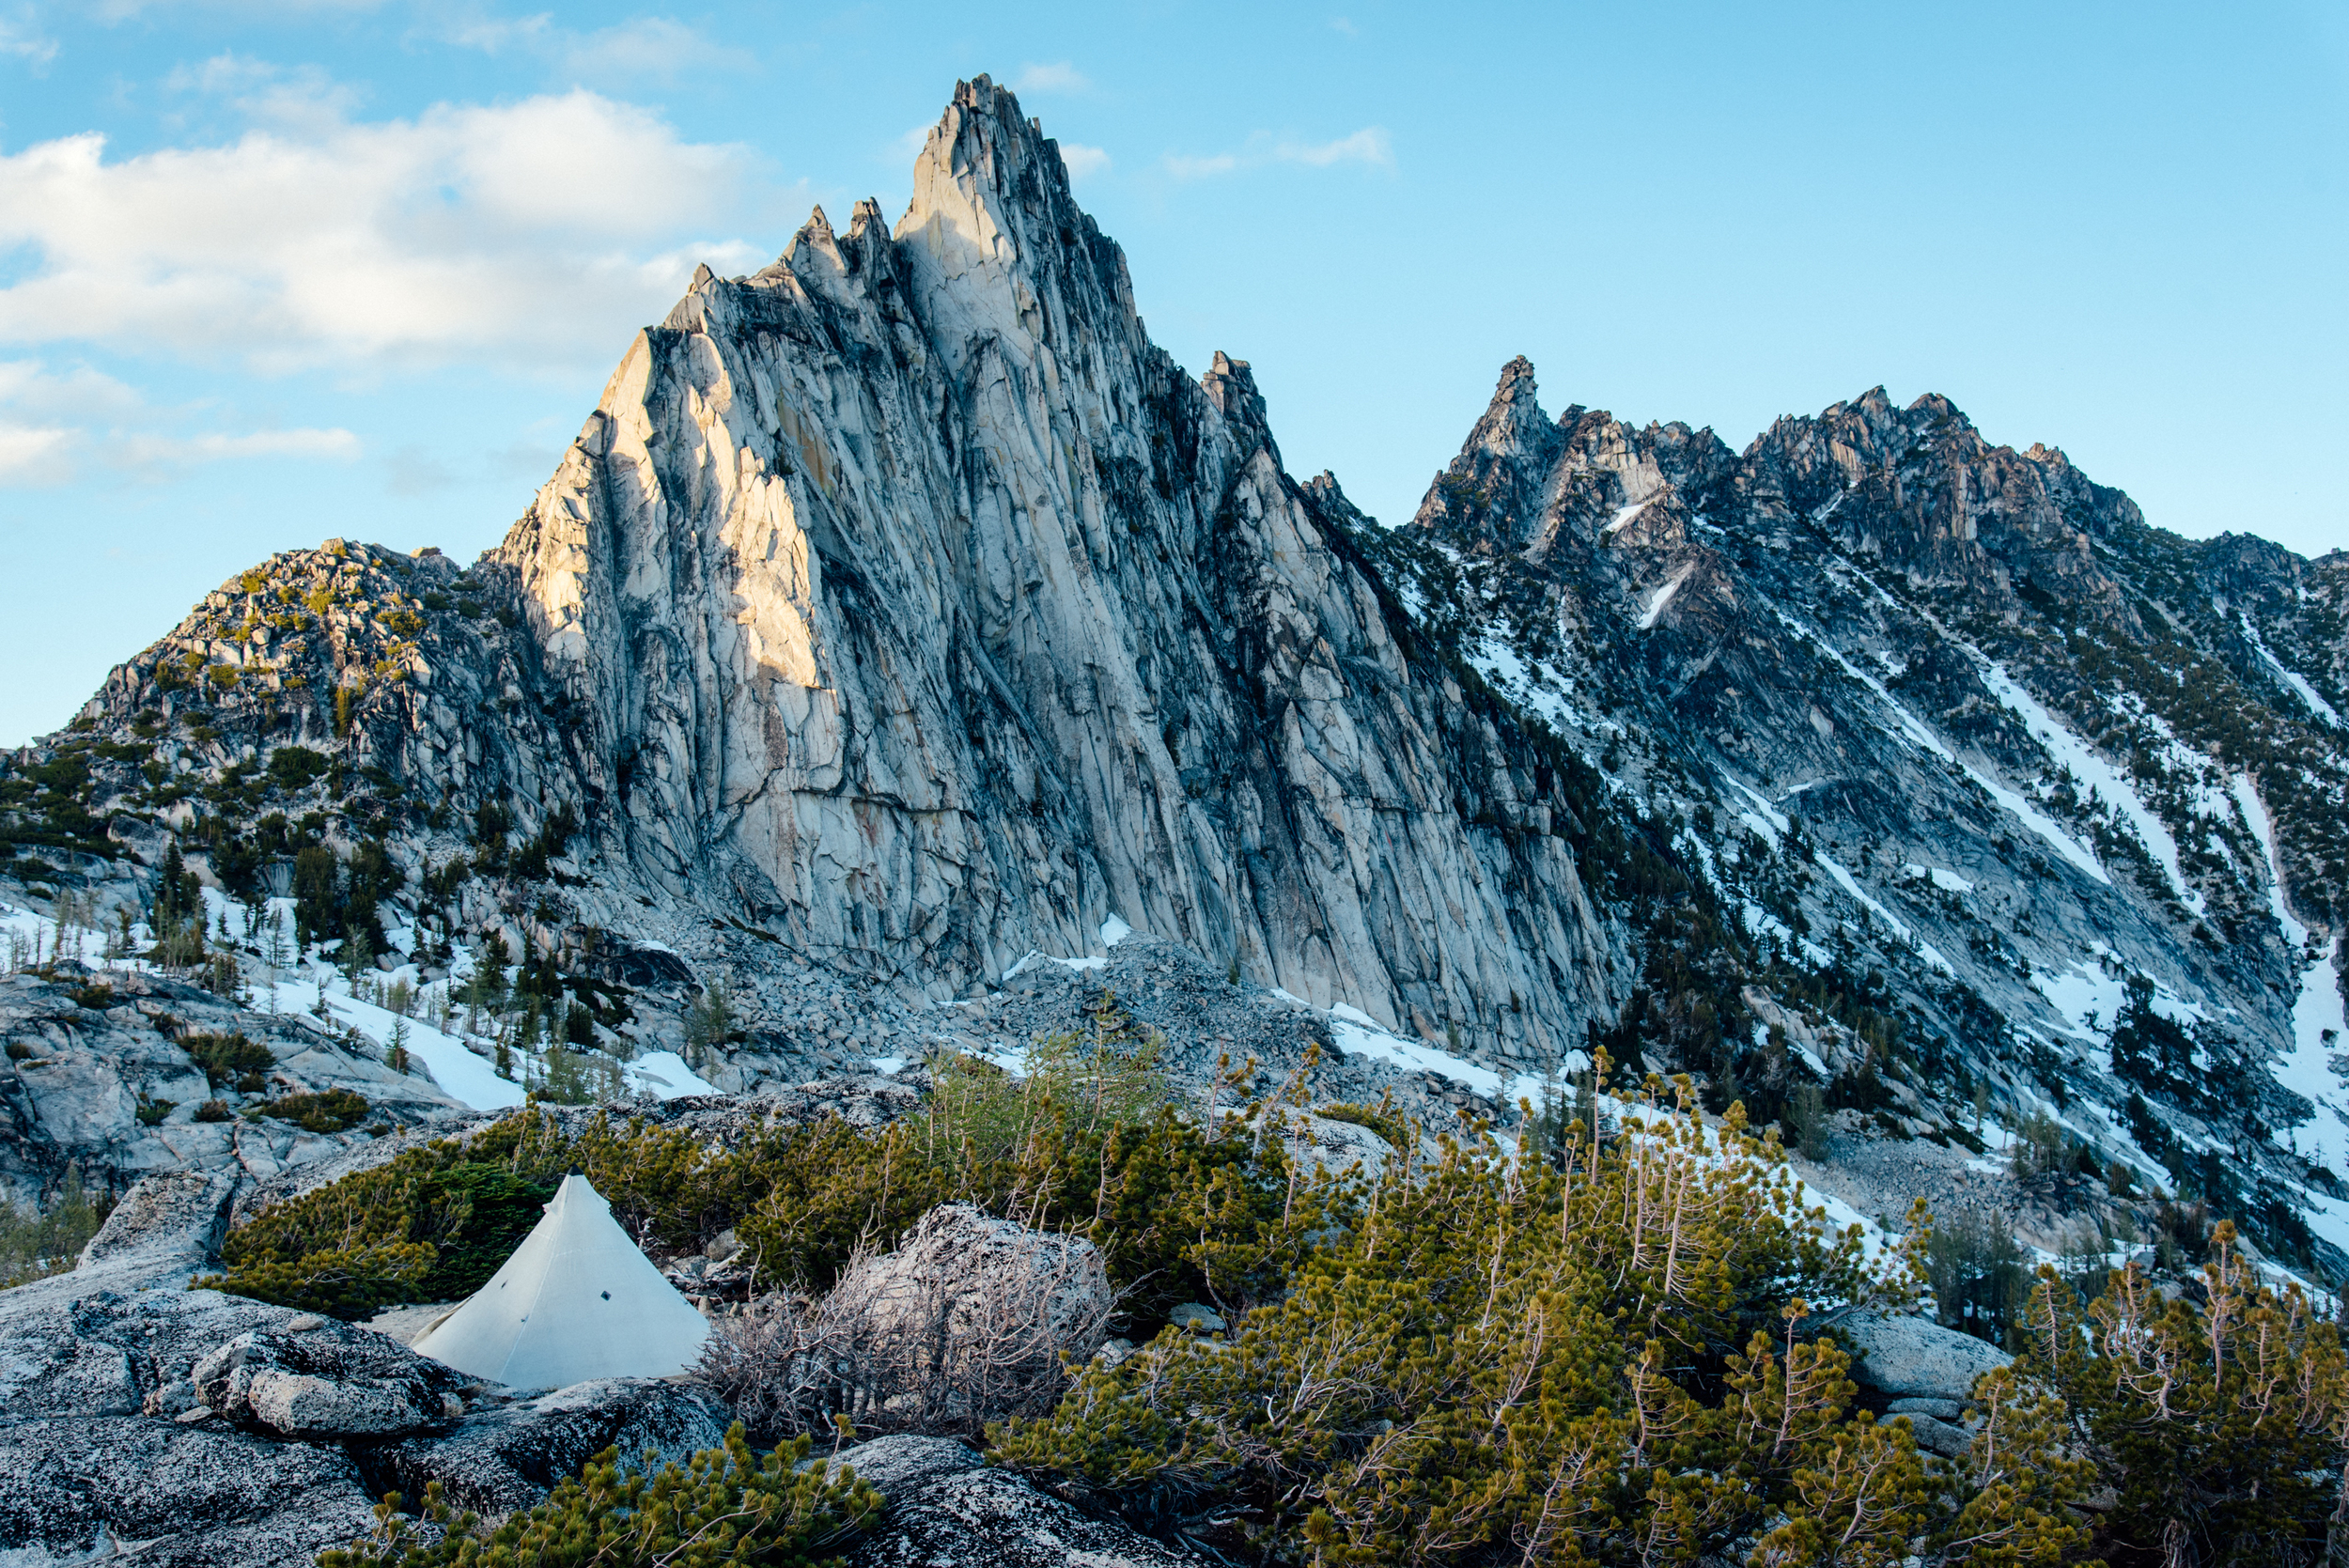 Enchantments-JUN16-13.jpg